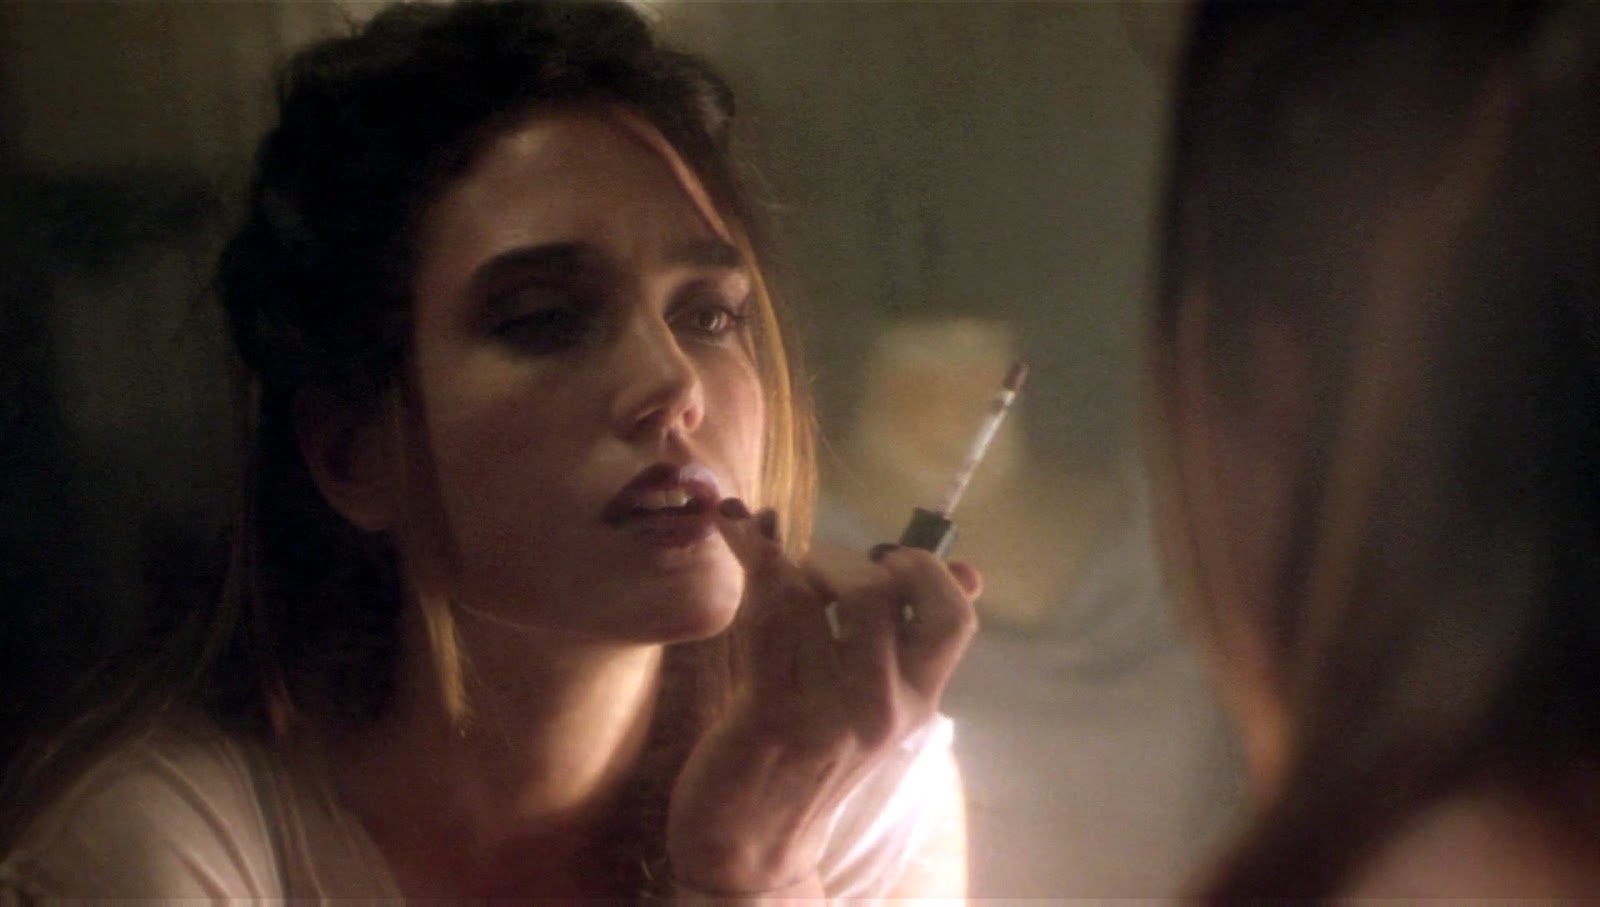 Jennifer connelly requiem for a dream double phrase, simply